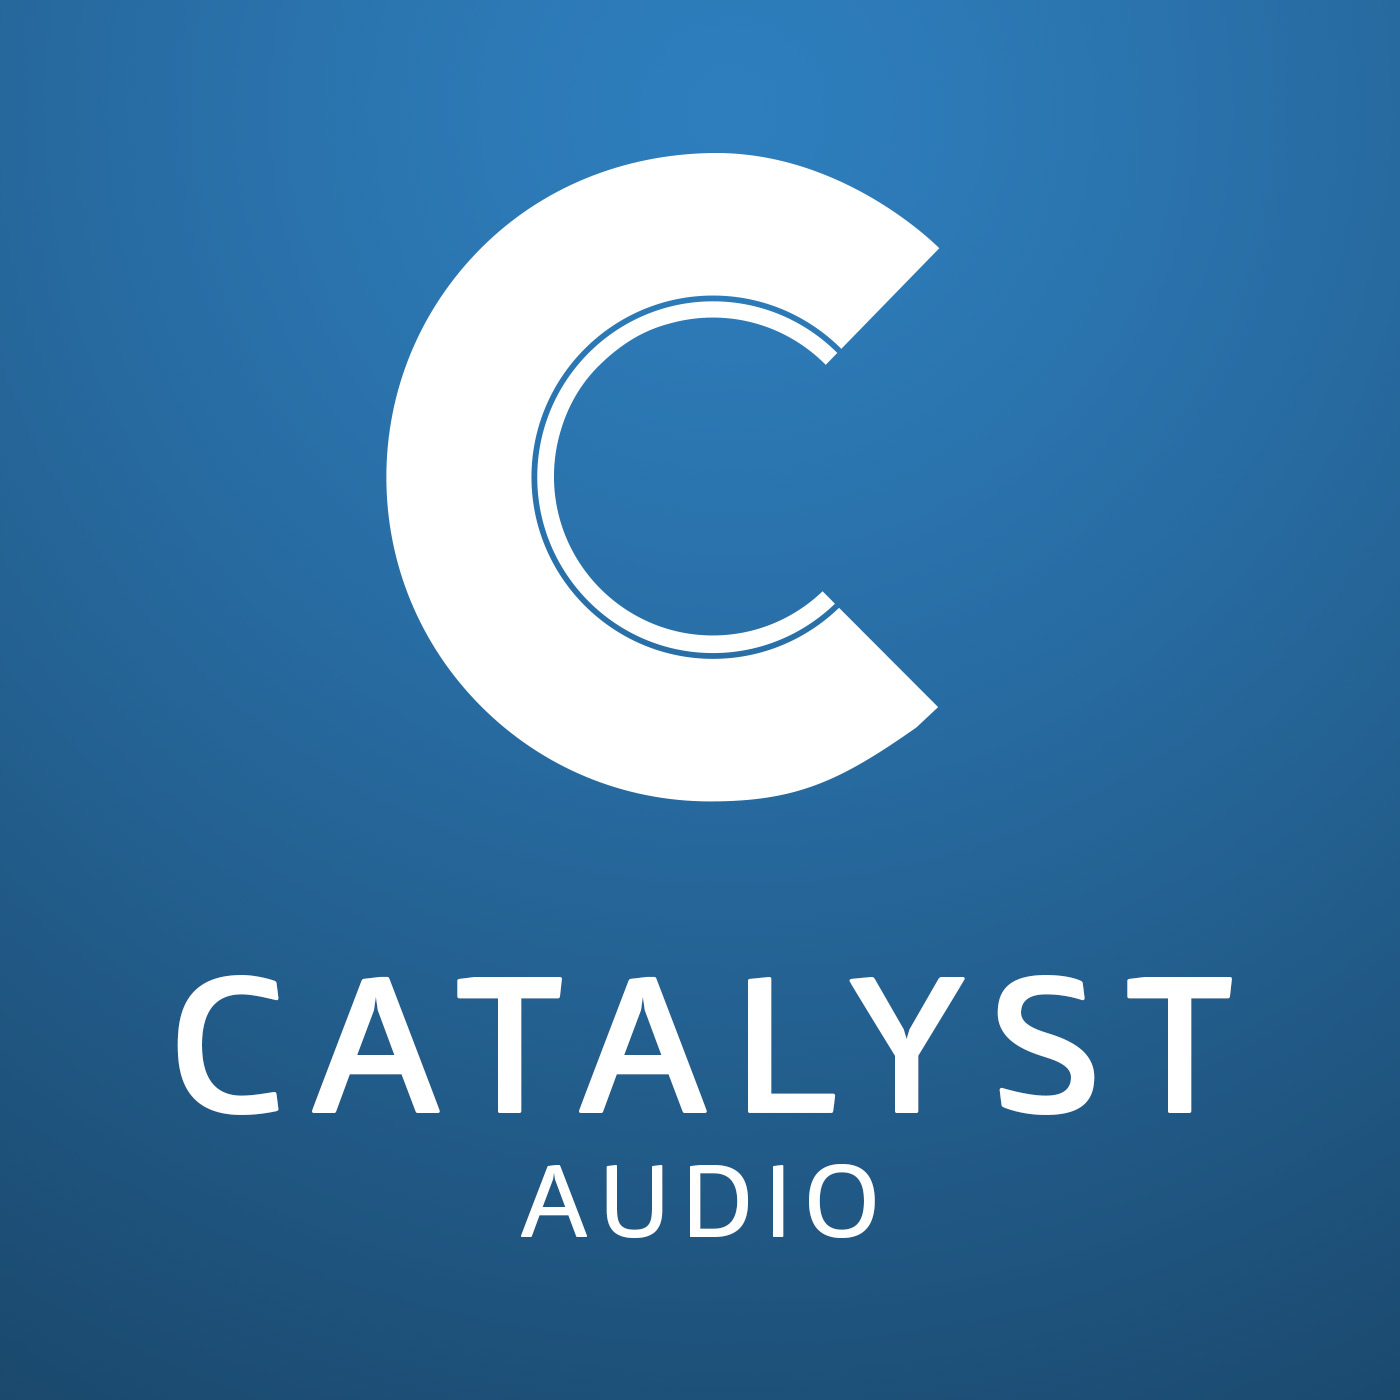 Traders Point Student Ministry - Catalyst (Audio)